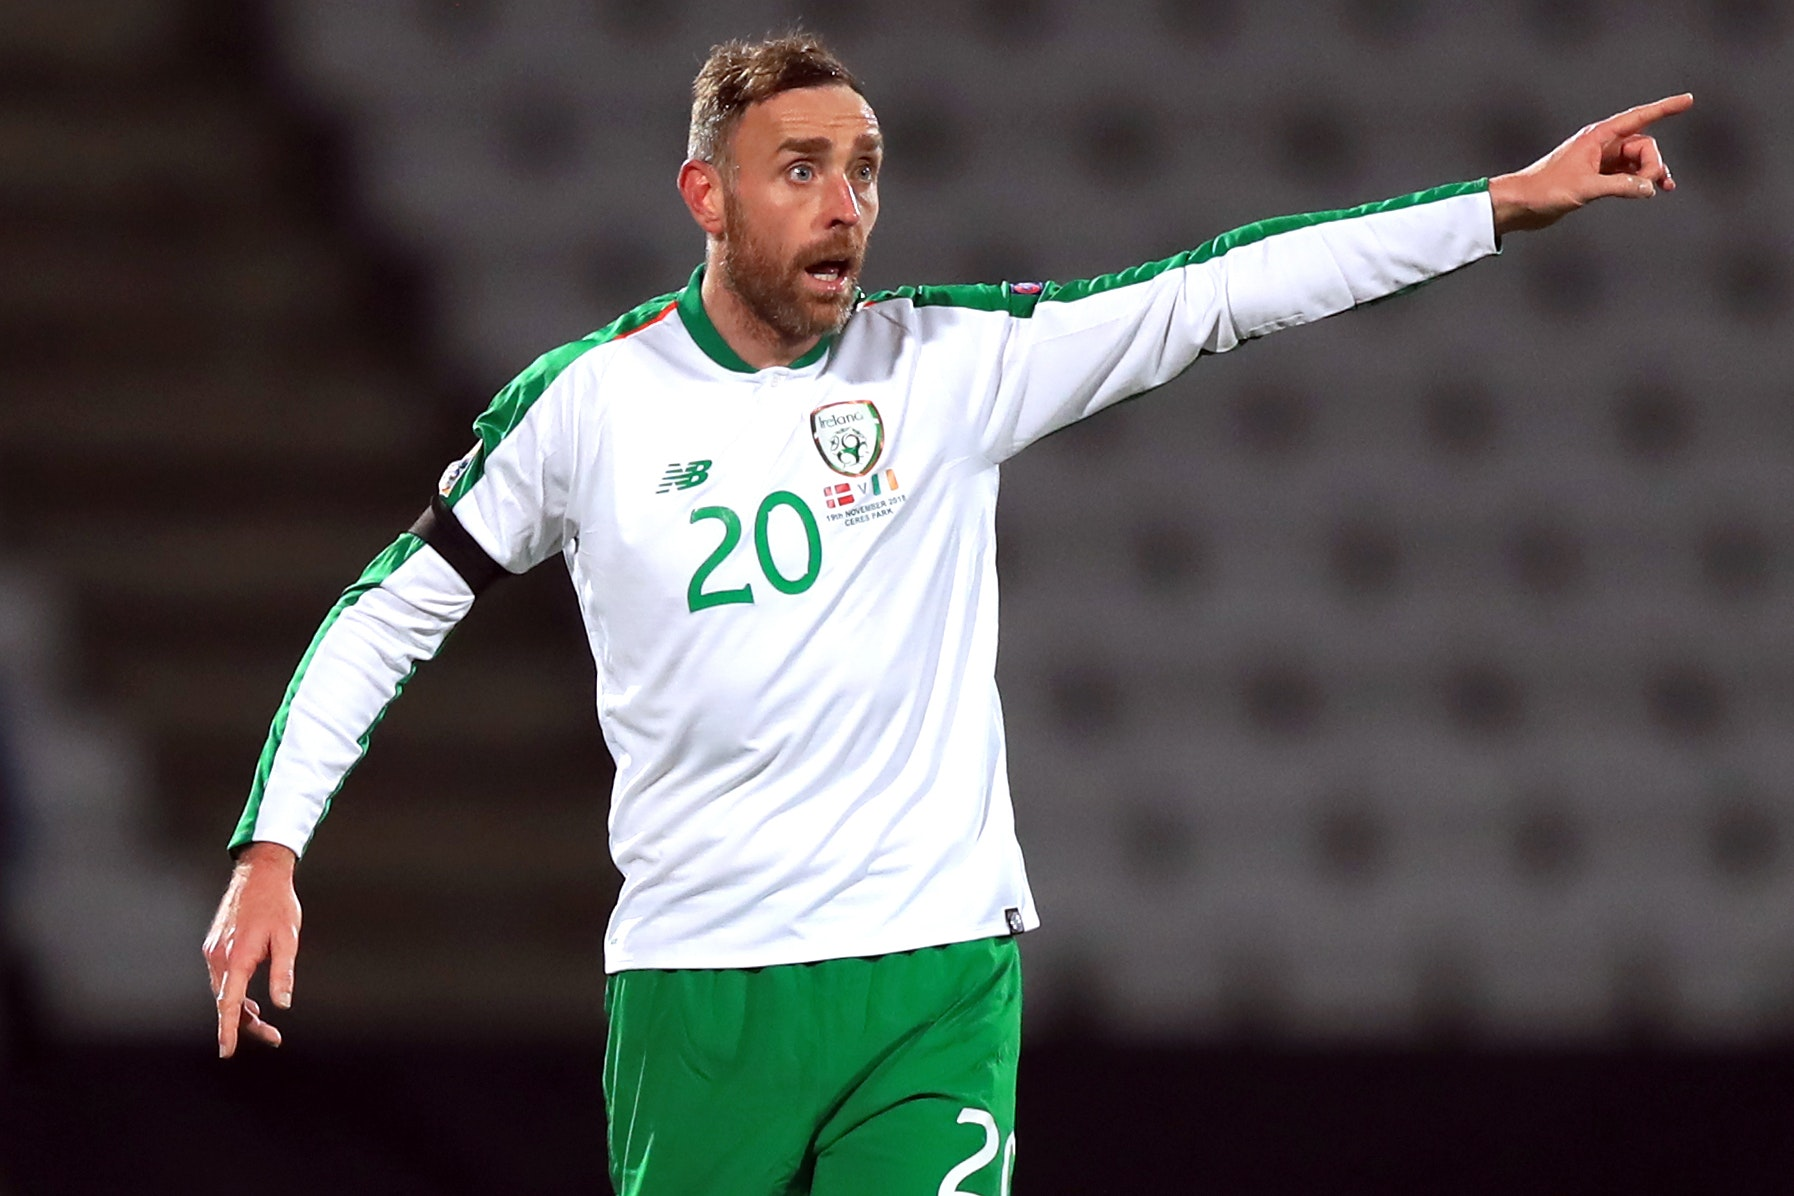 Republic of Ireland defender Richard Keogh could play against Gibraltar with a broken hand